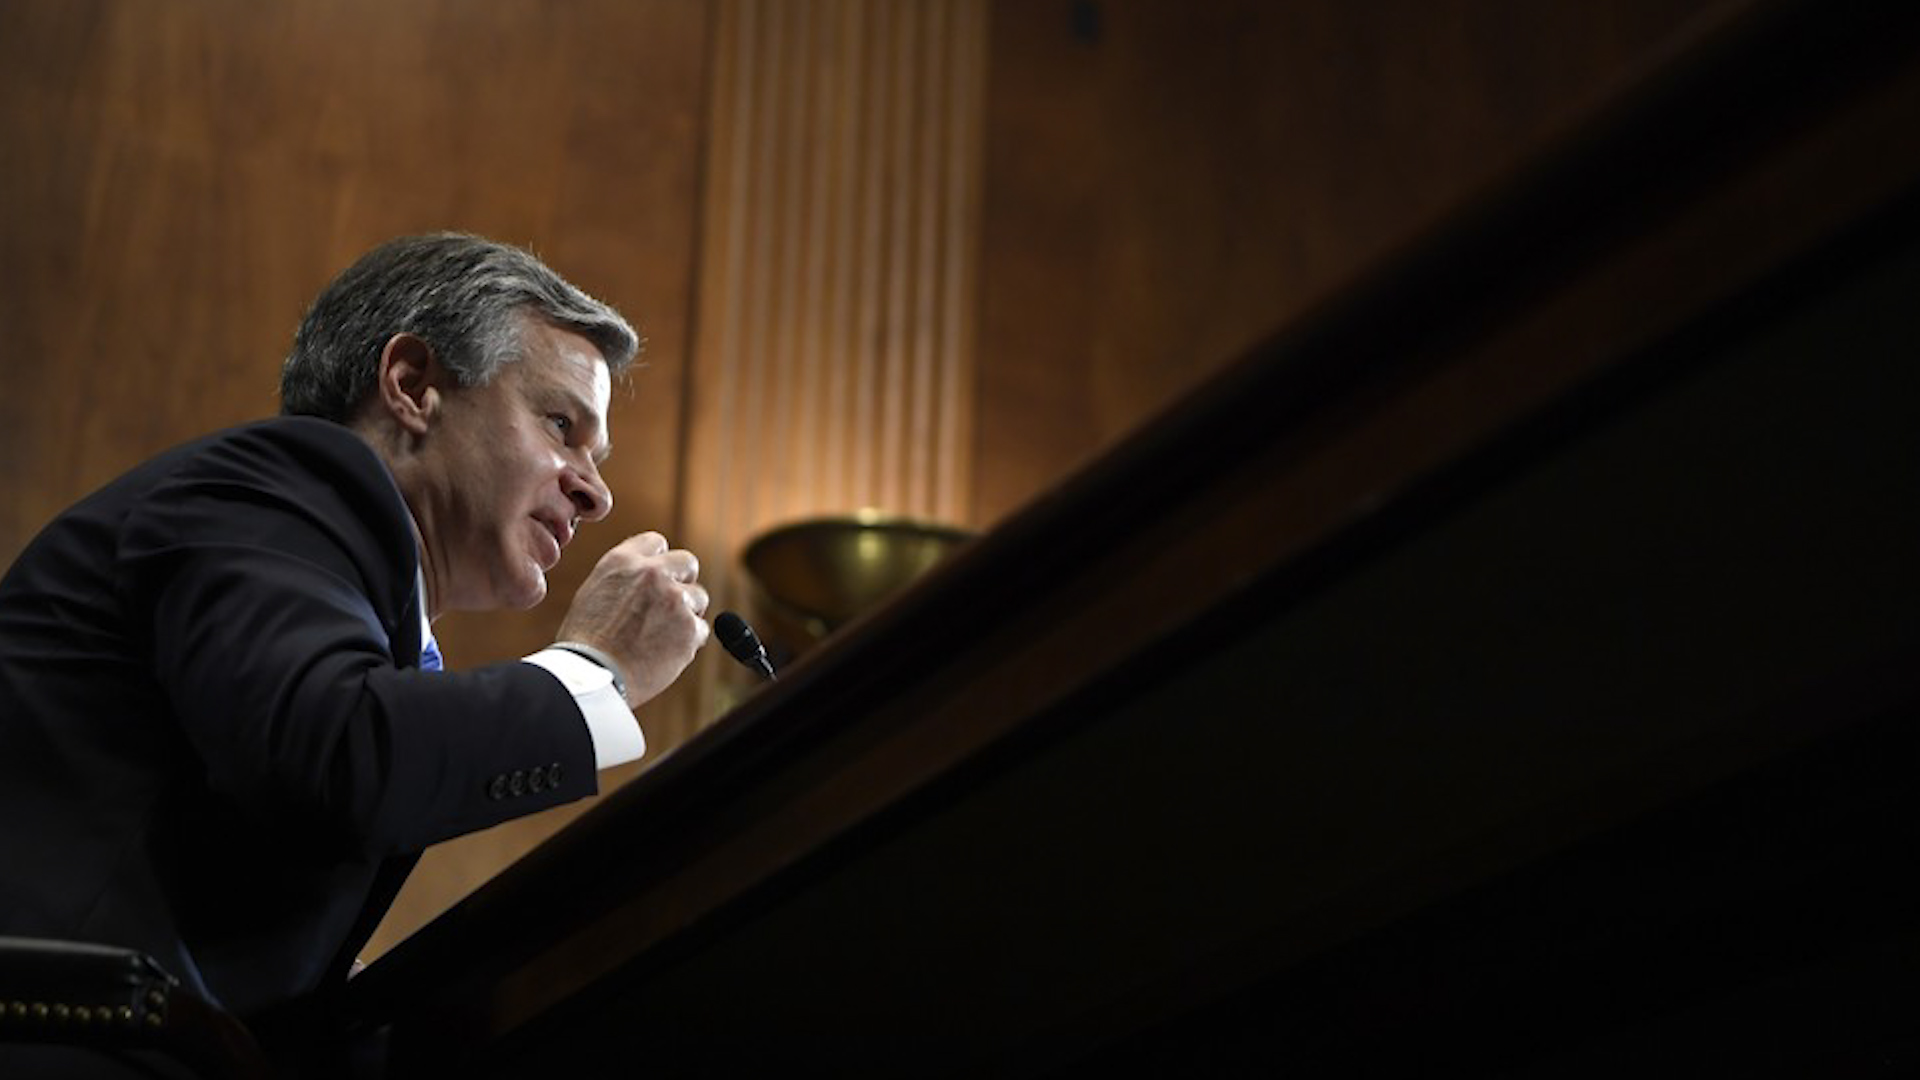 Wray says FBI has recorded about 100 domestic terrorism arrests in fiscal 2019 and many investigations involve white supremacy